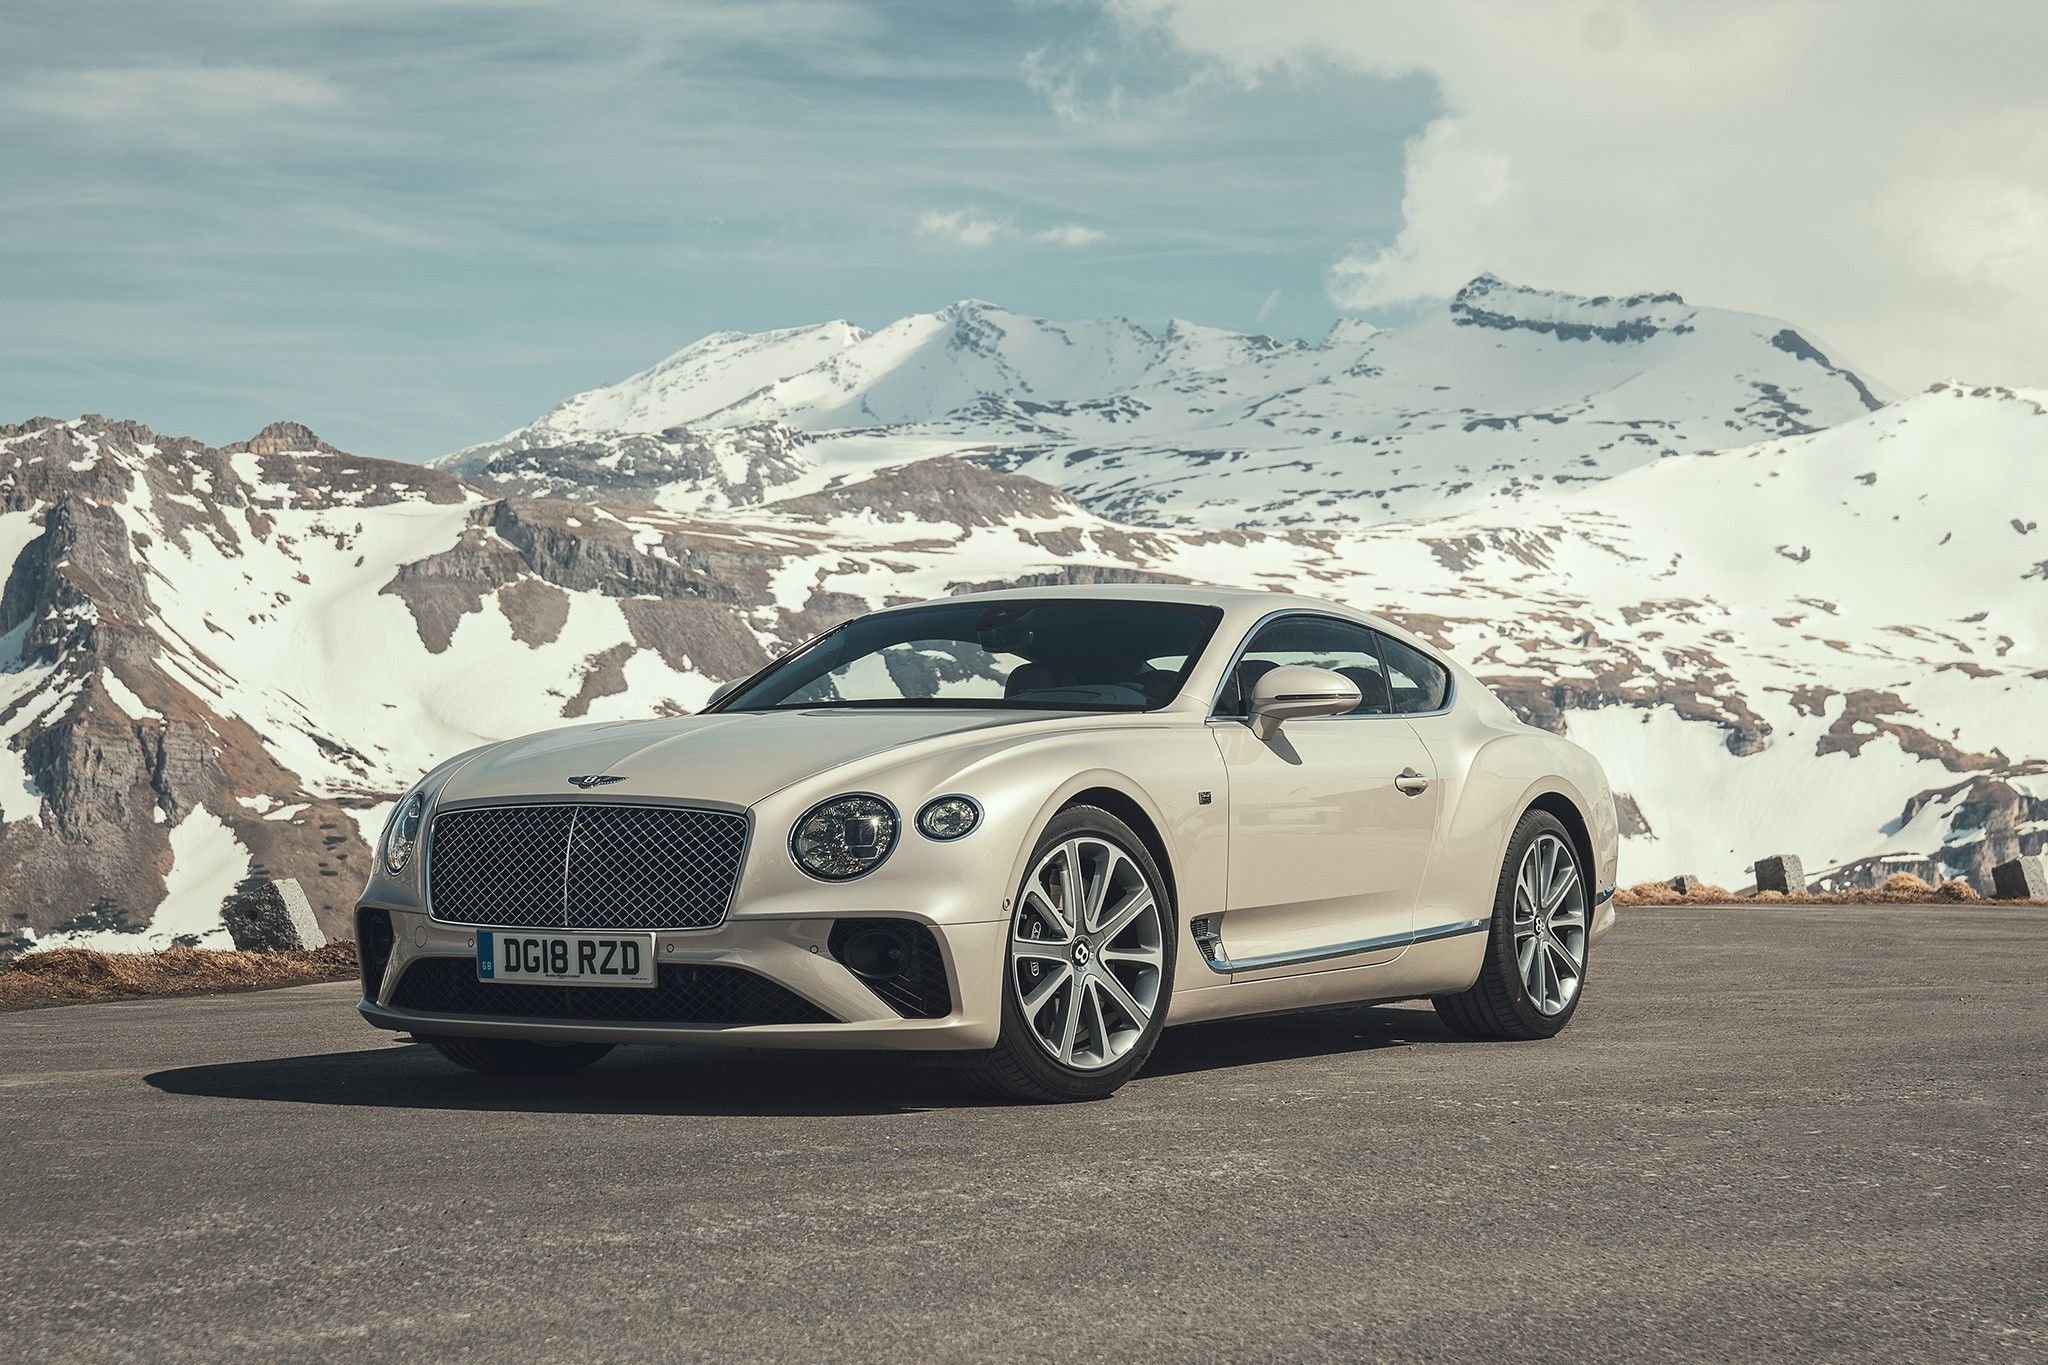 2019 Bentley Continental Gt With Images Bentley Continental Gt Bentley Continental Gt Convertible Bentley Continental